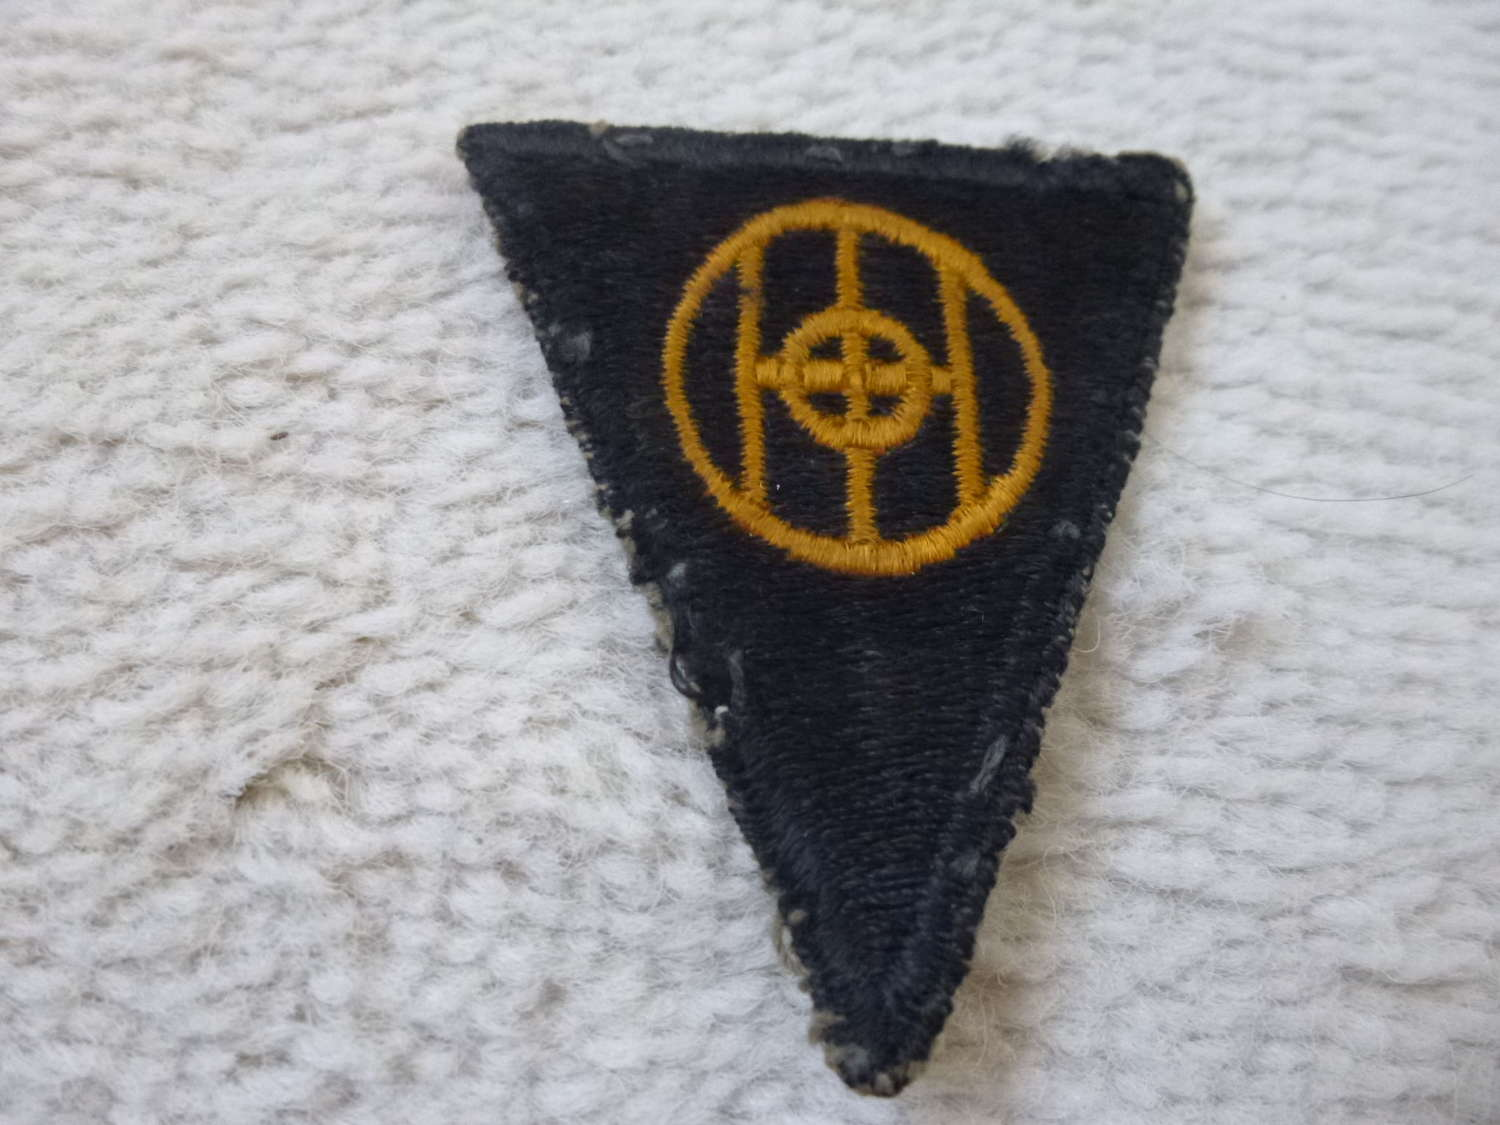 US army 83rd infantry division patch